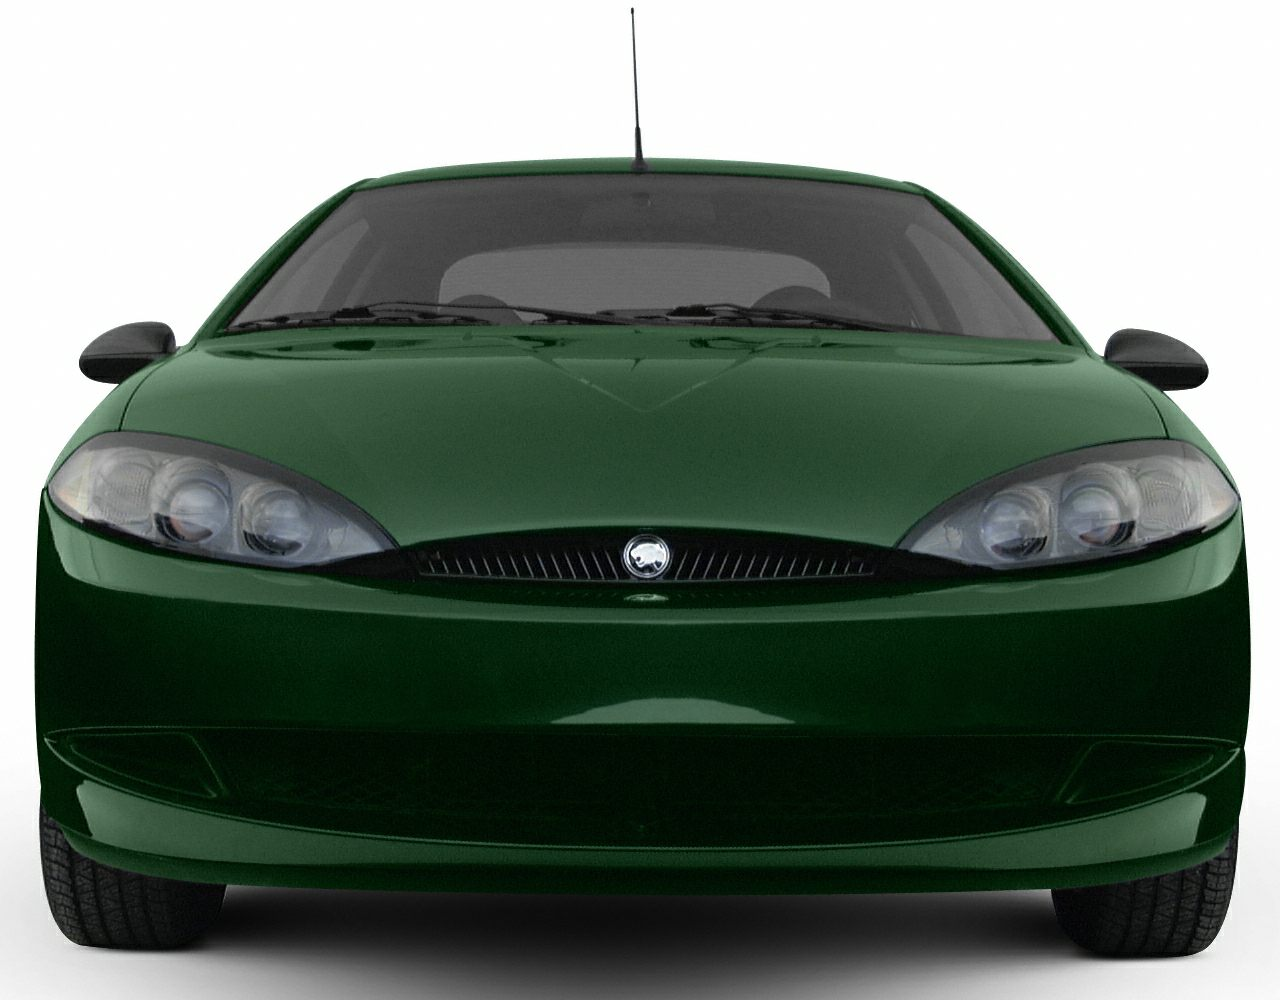 hight resolution of 2000 mercury cougar exterior photo